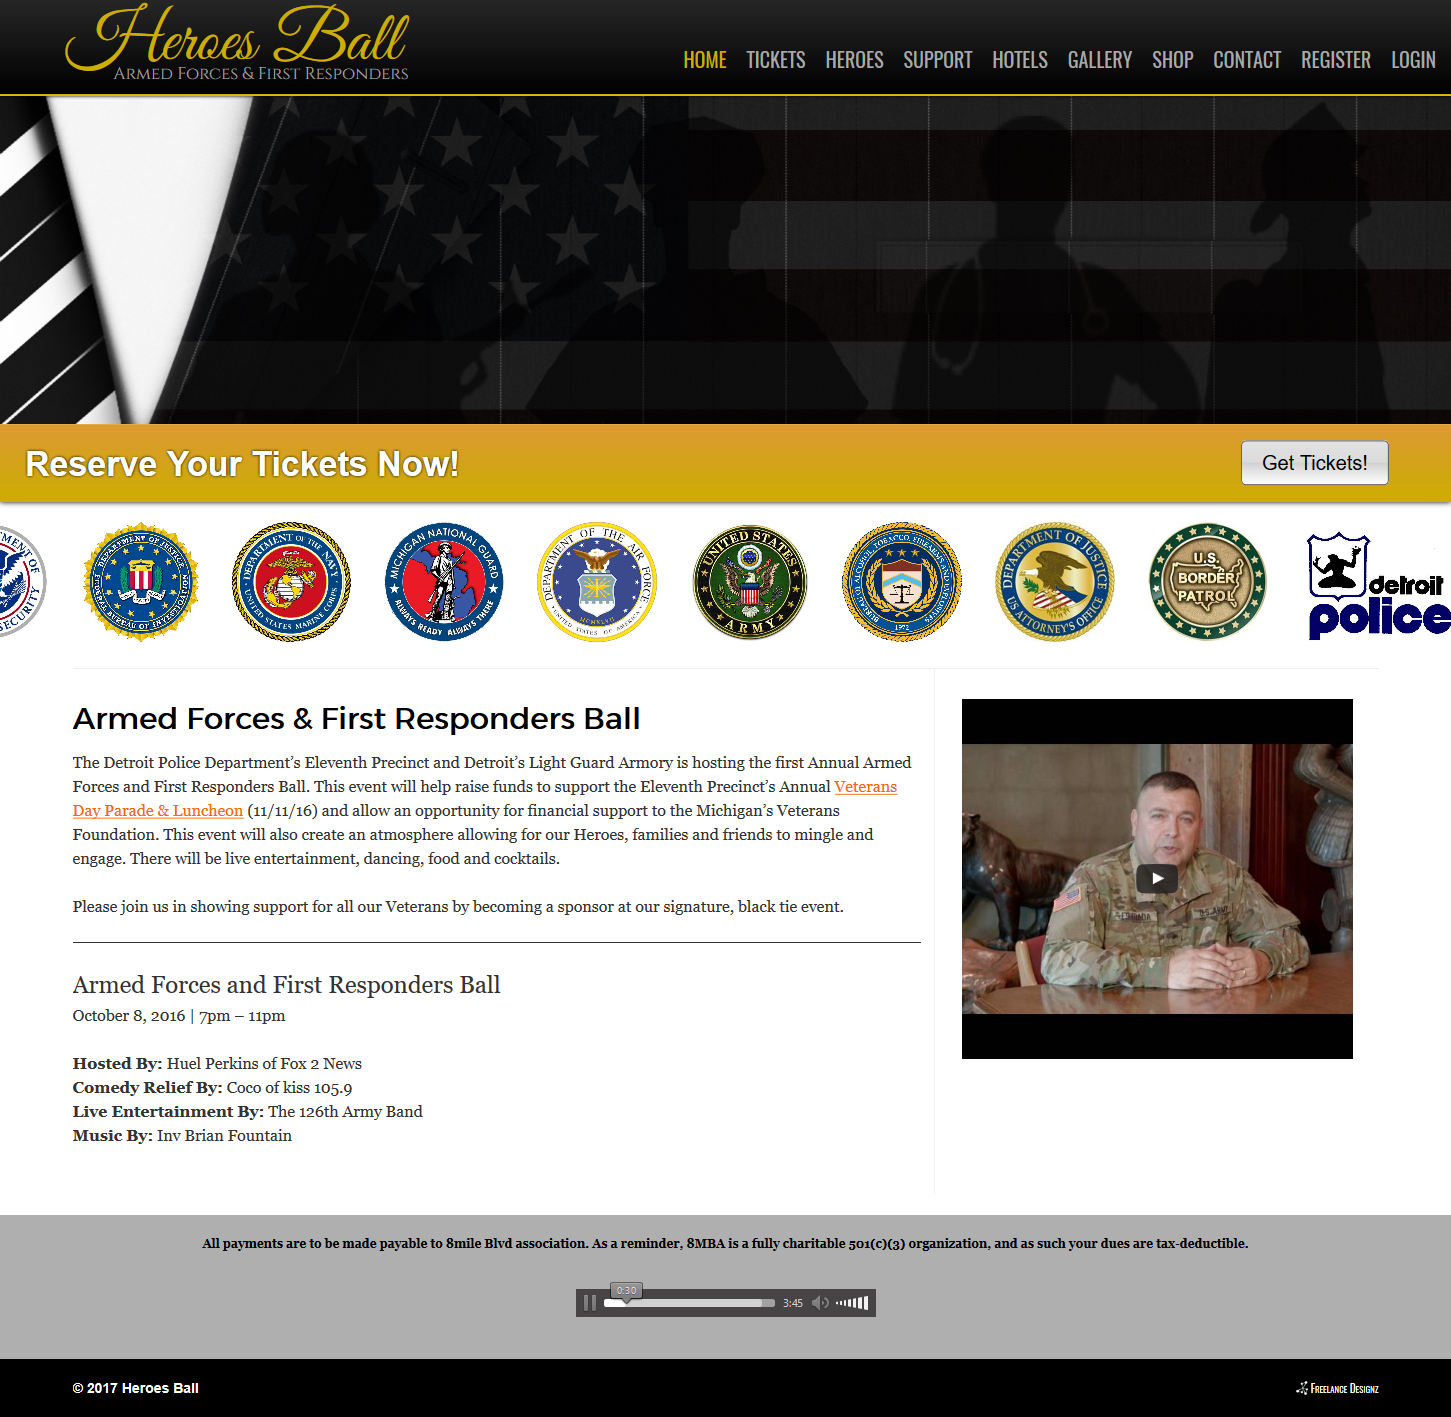 Armed Forces & First Responder's Heroes Ball